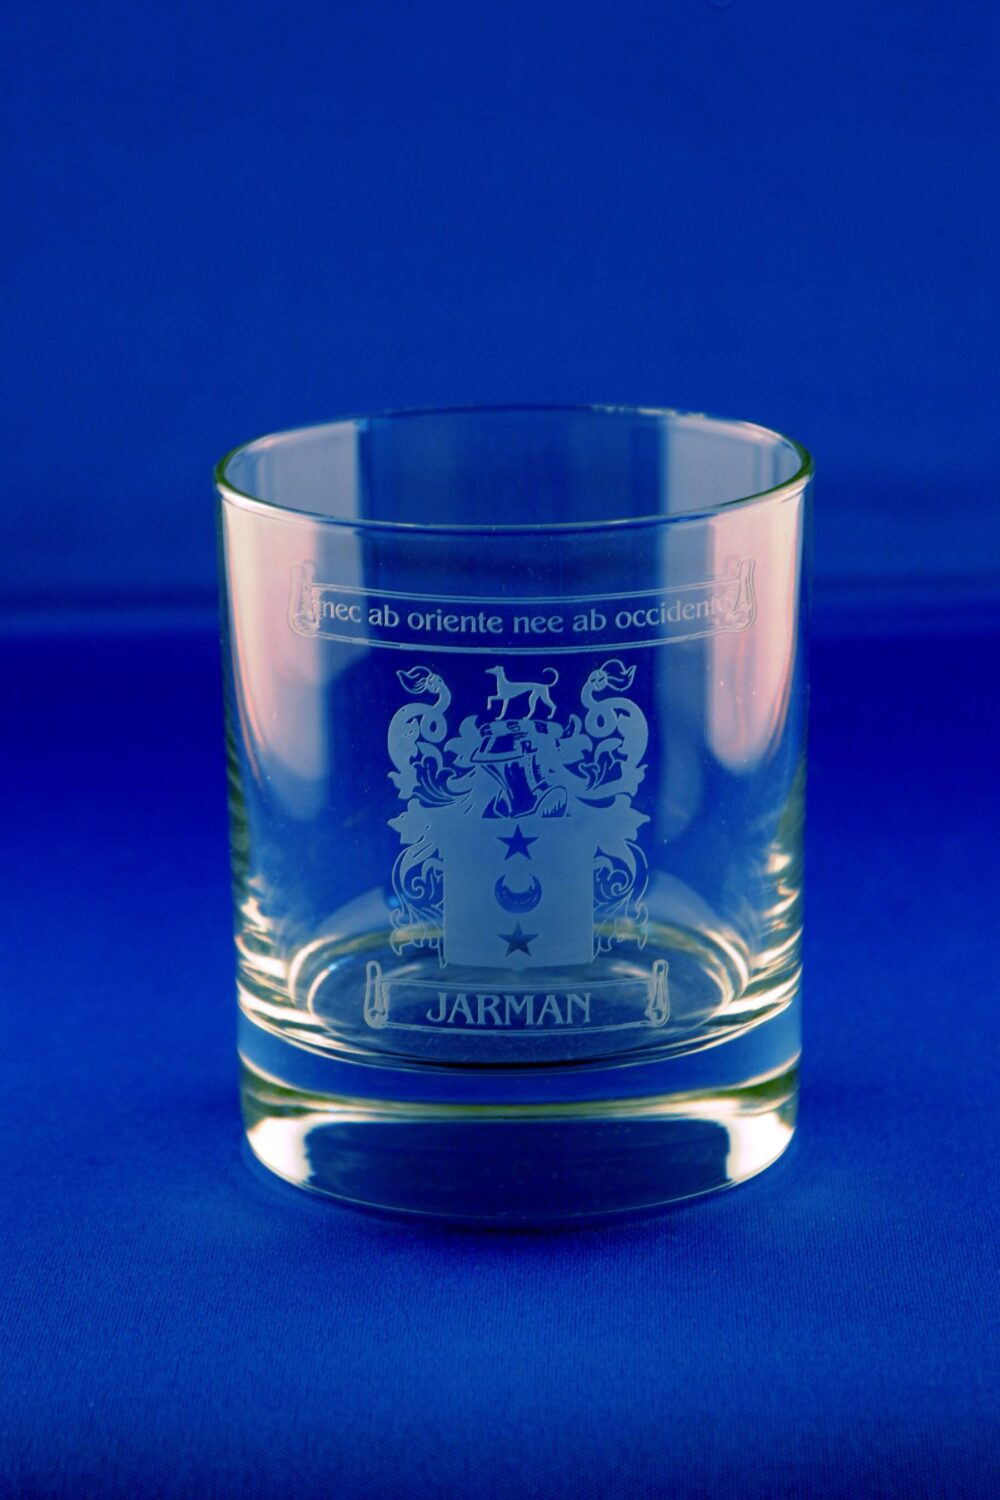 Whisky tumbler with family crest